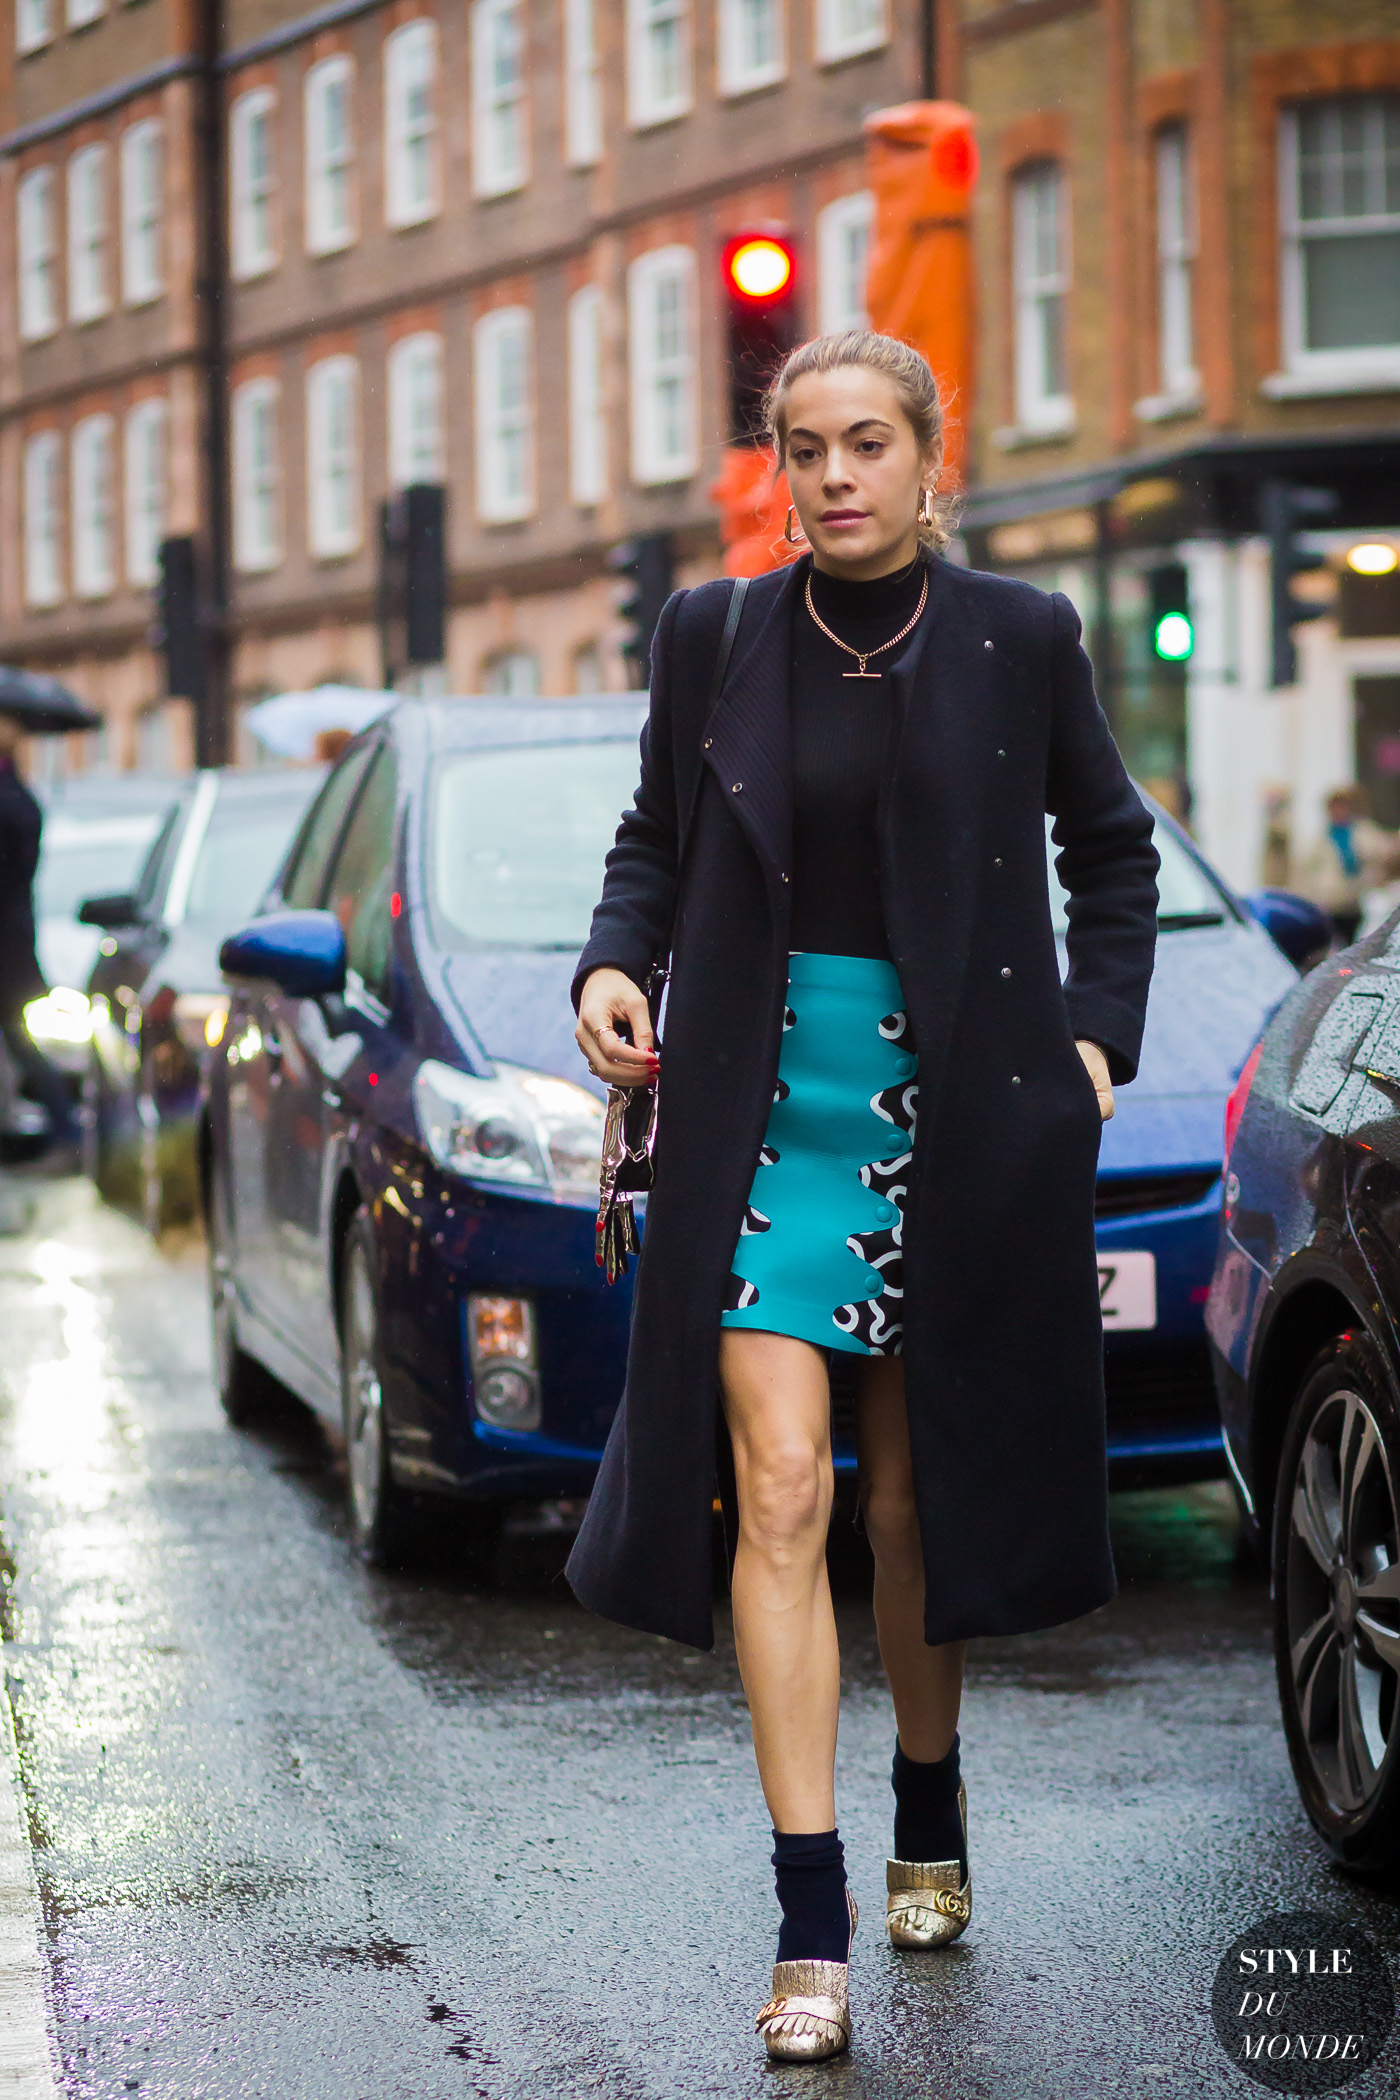 Chelsea Leyland Street Style Street Fashion Streetsnaps by STYLEDUMONDE Street Style Fashion Photography